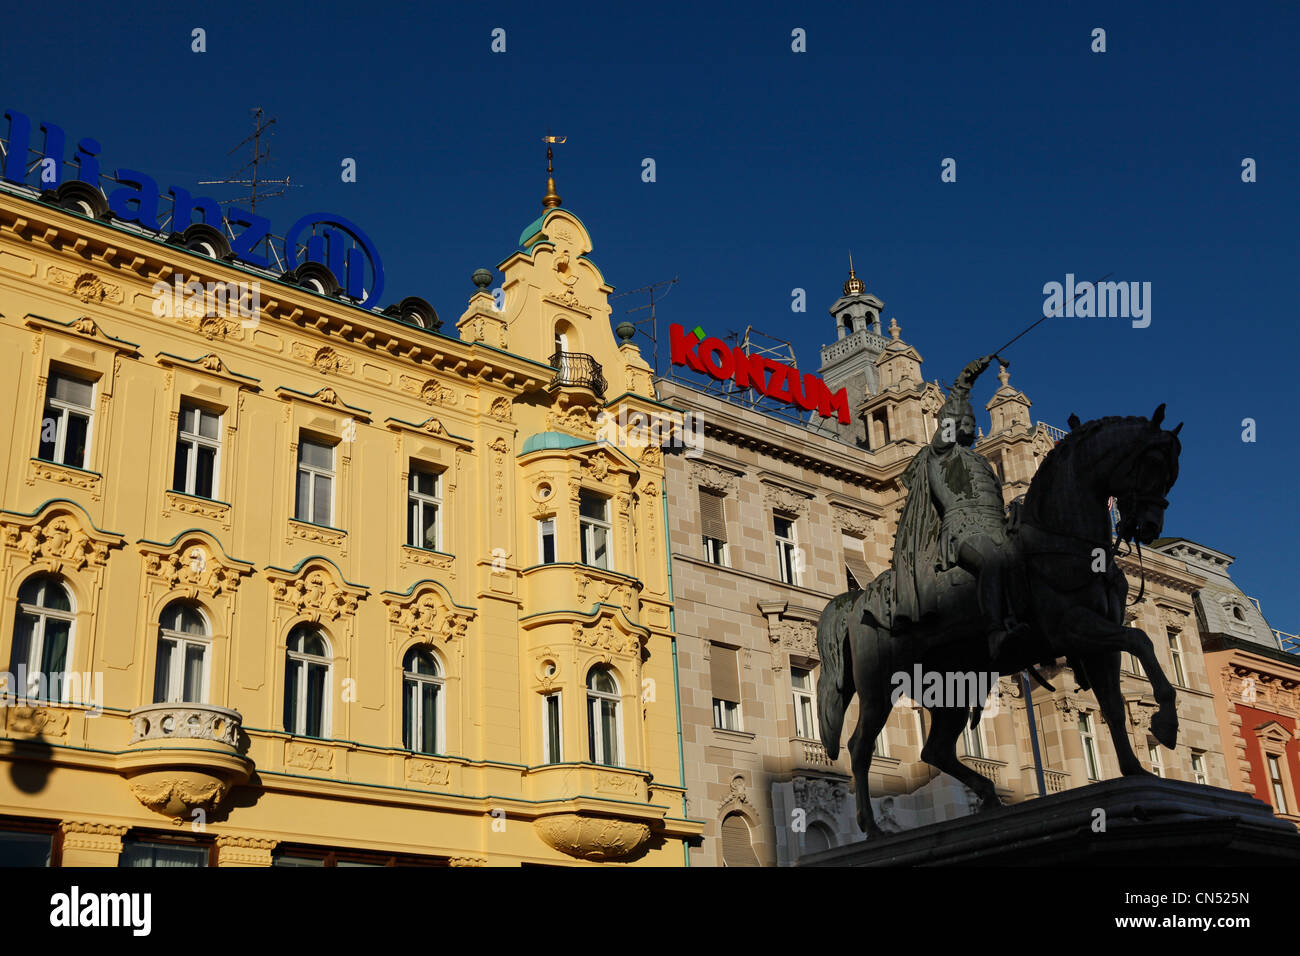 Croatia, Zagreb, the central square with the statue of Ban Josip Selacie Stock Photo